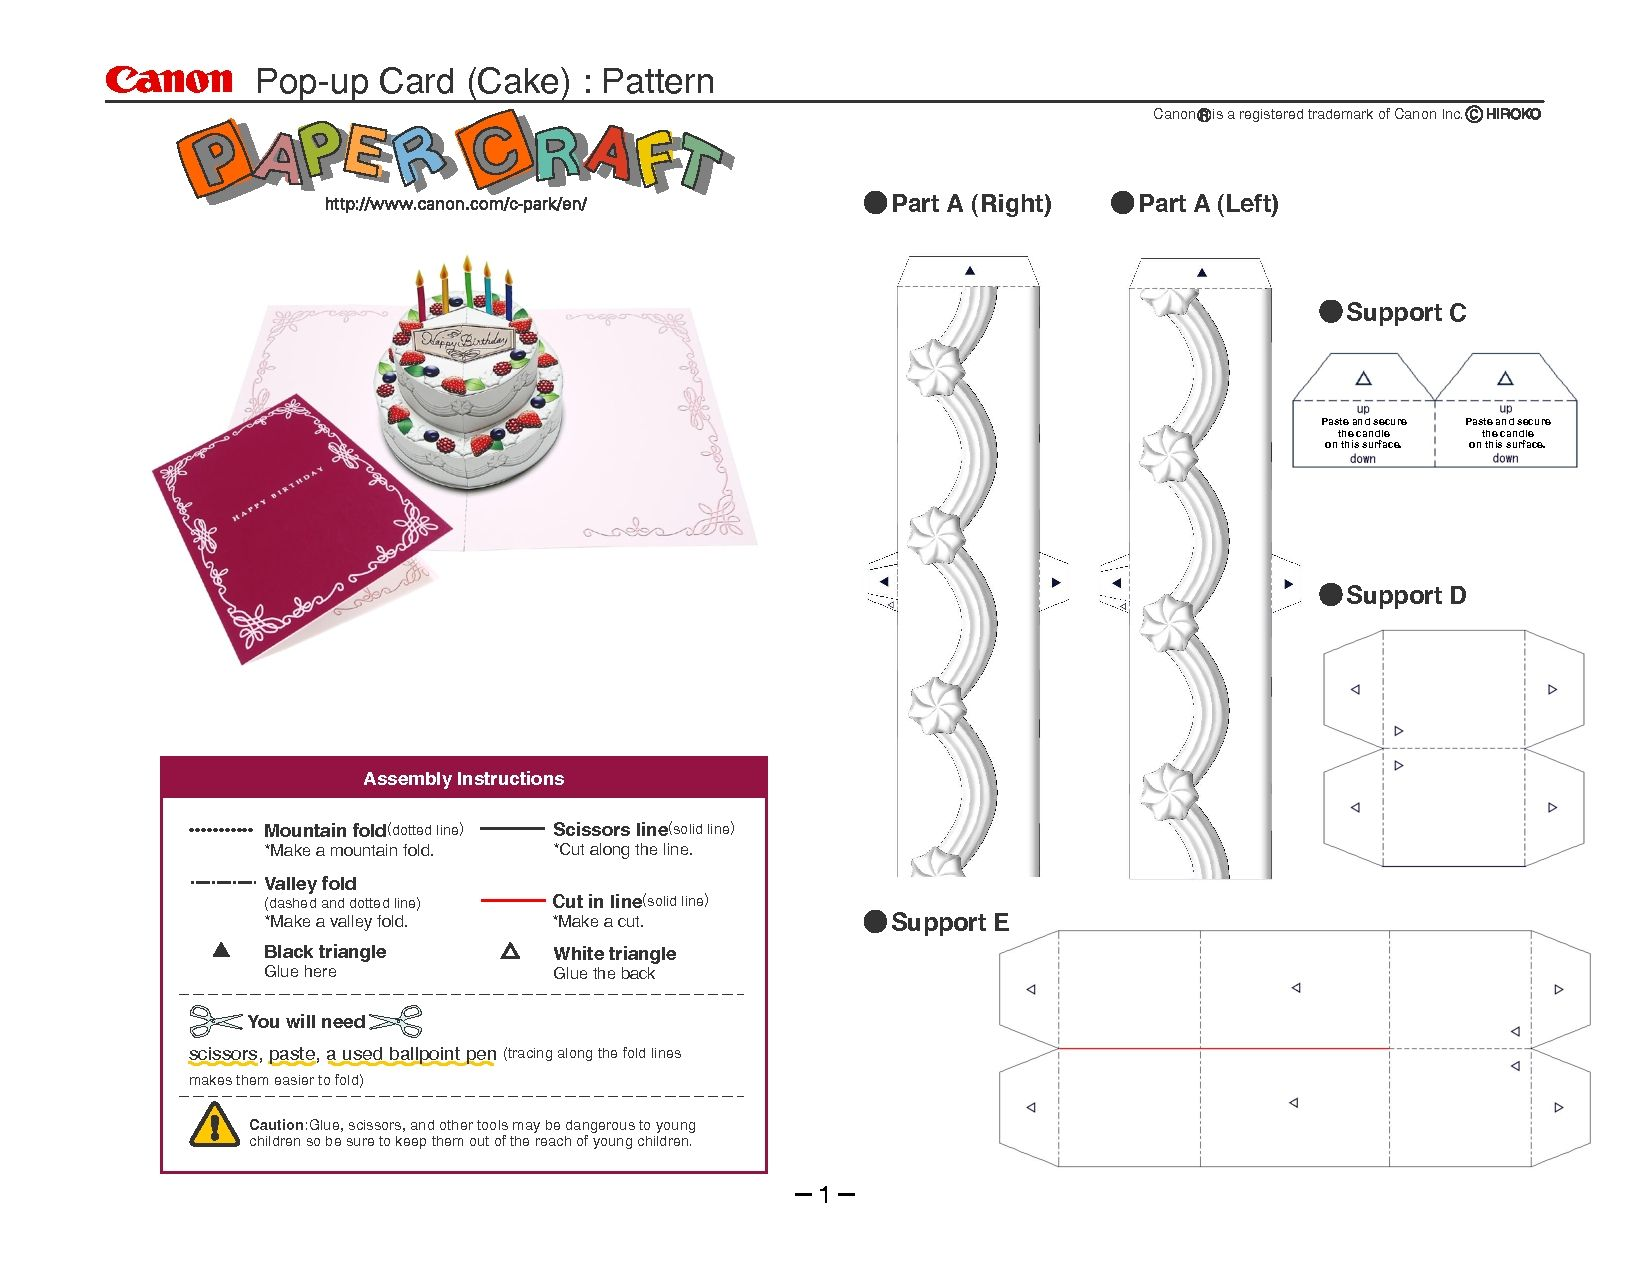 Great Birthday Cake Card Template Free Printable Birthday Pop Up Card Templates  Birthday Cake, Digital Templates Birthday Cake Card Template Paper  Crafters, ... Home Design Ideas